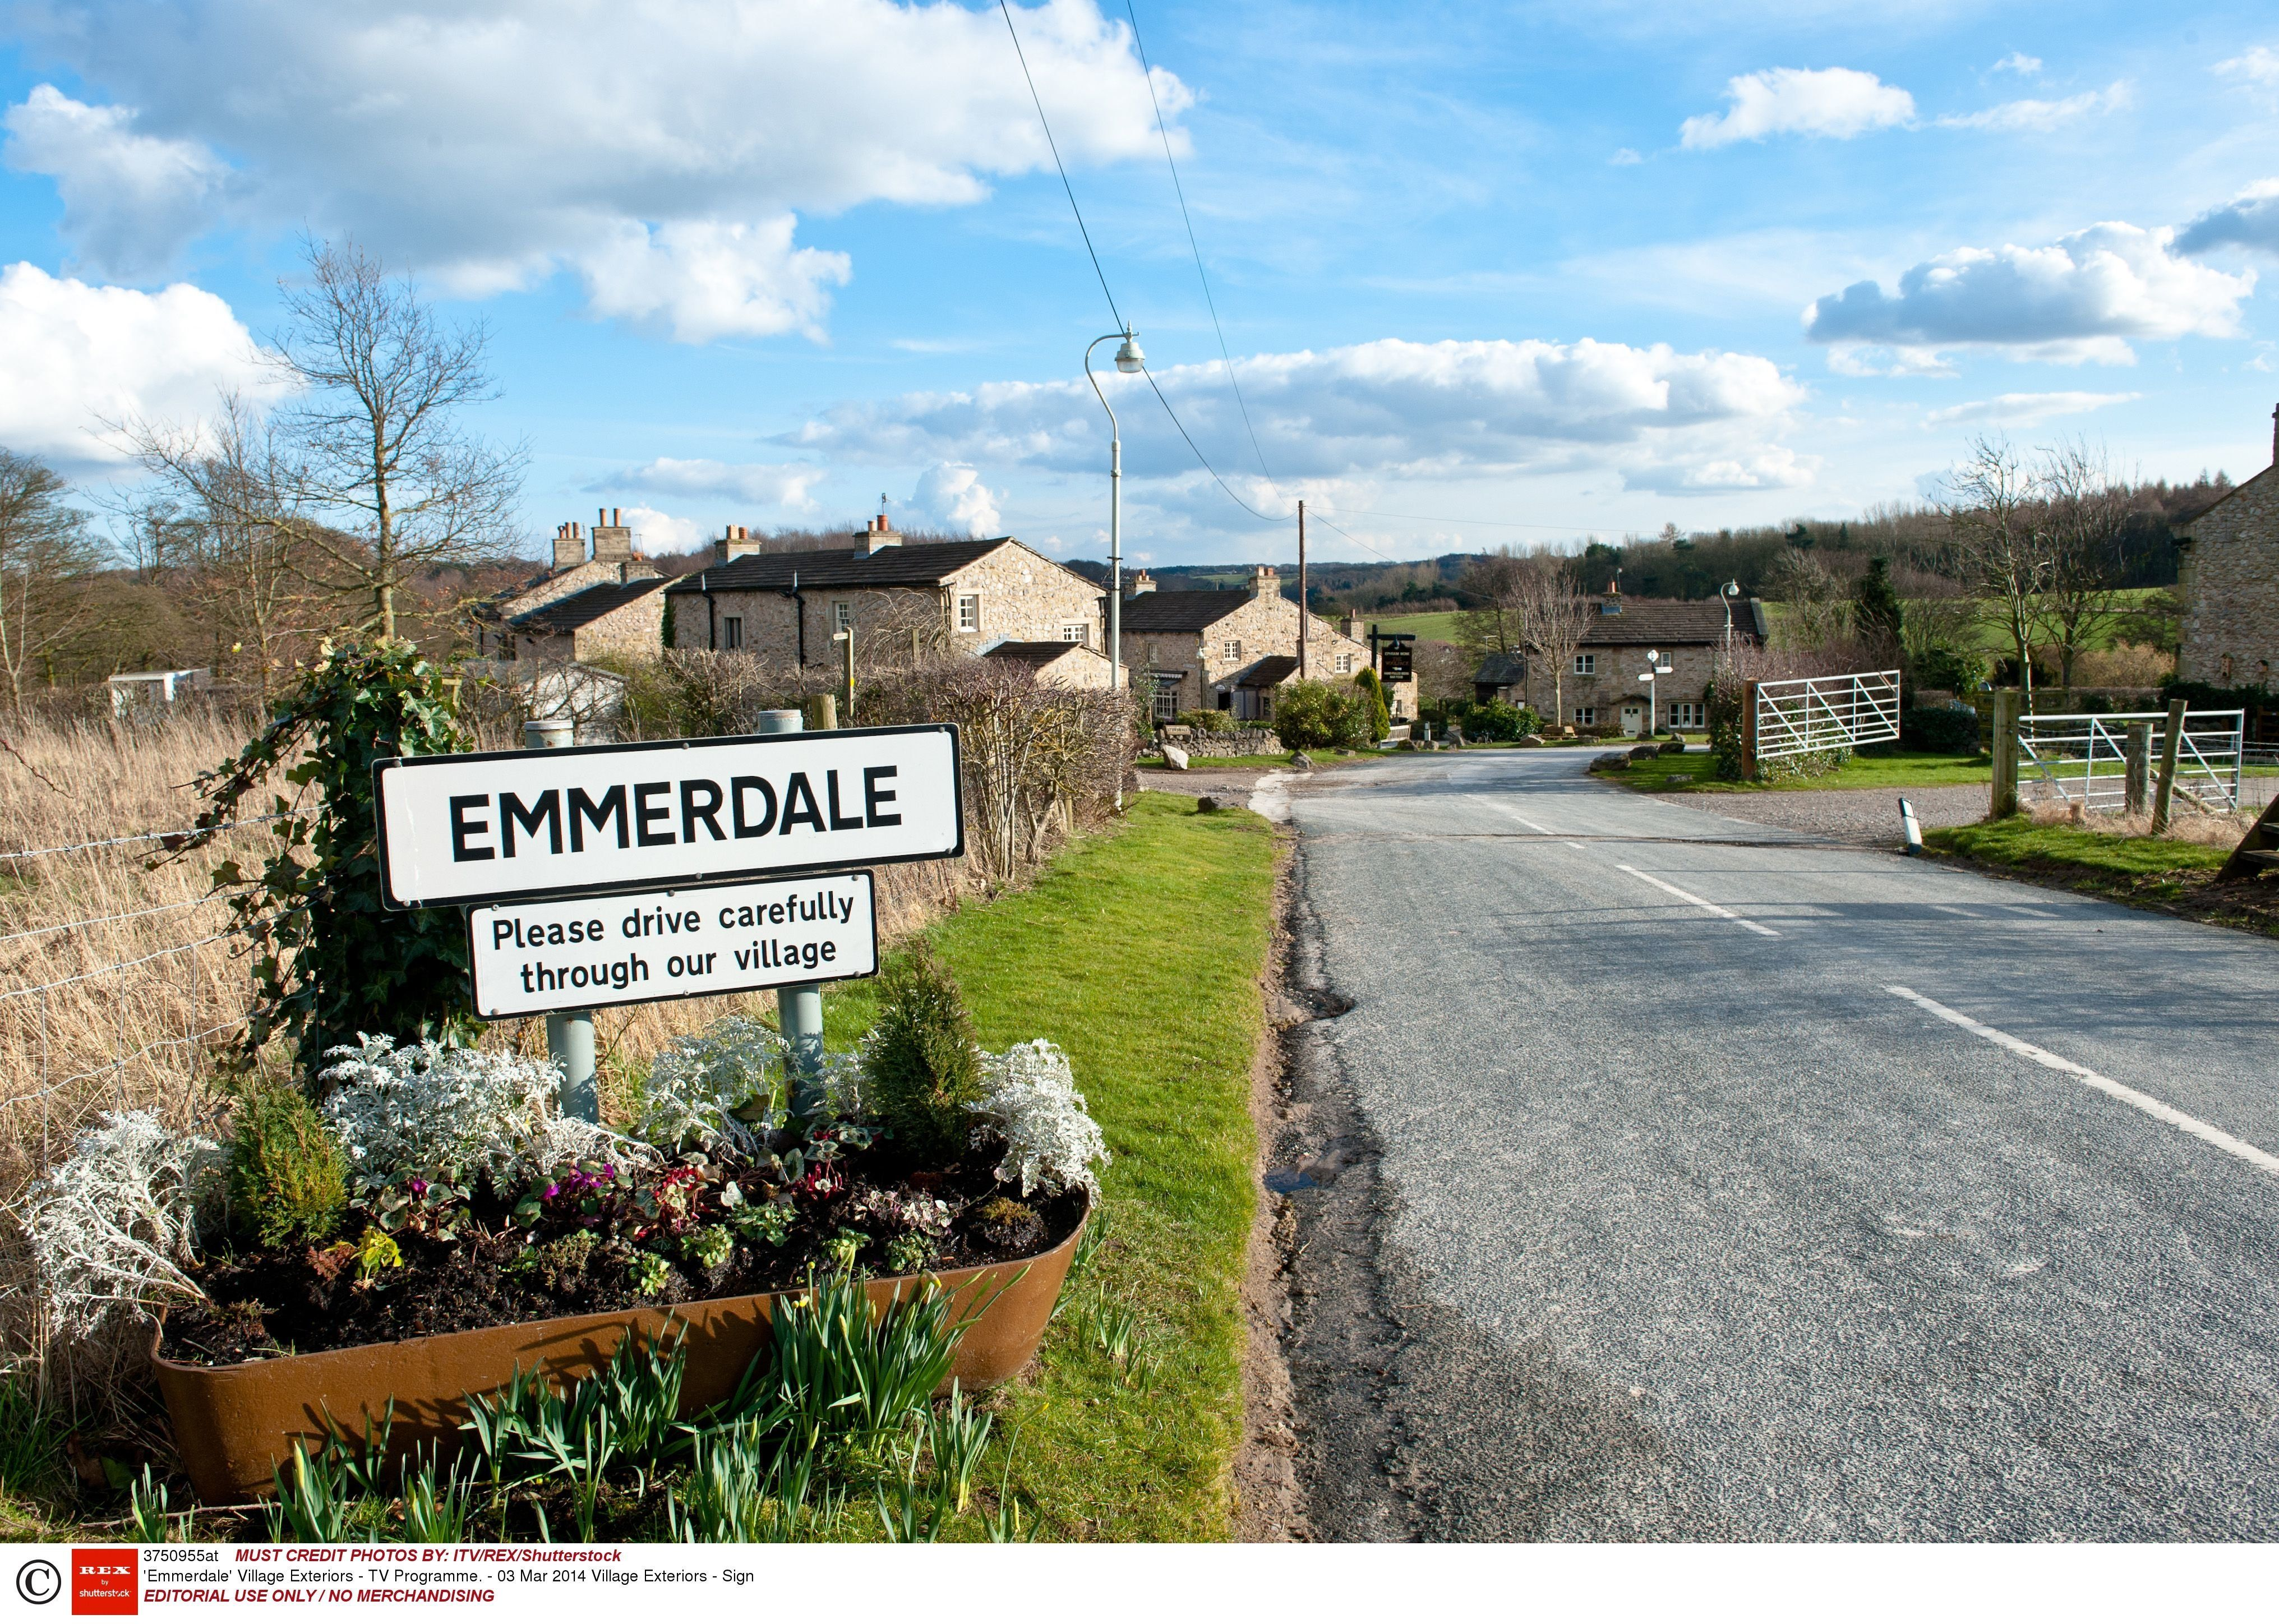 'Emmerdale' Spoilers: Female Character Set To Be Killed